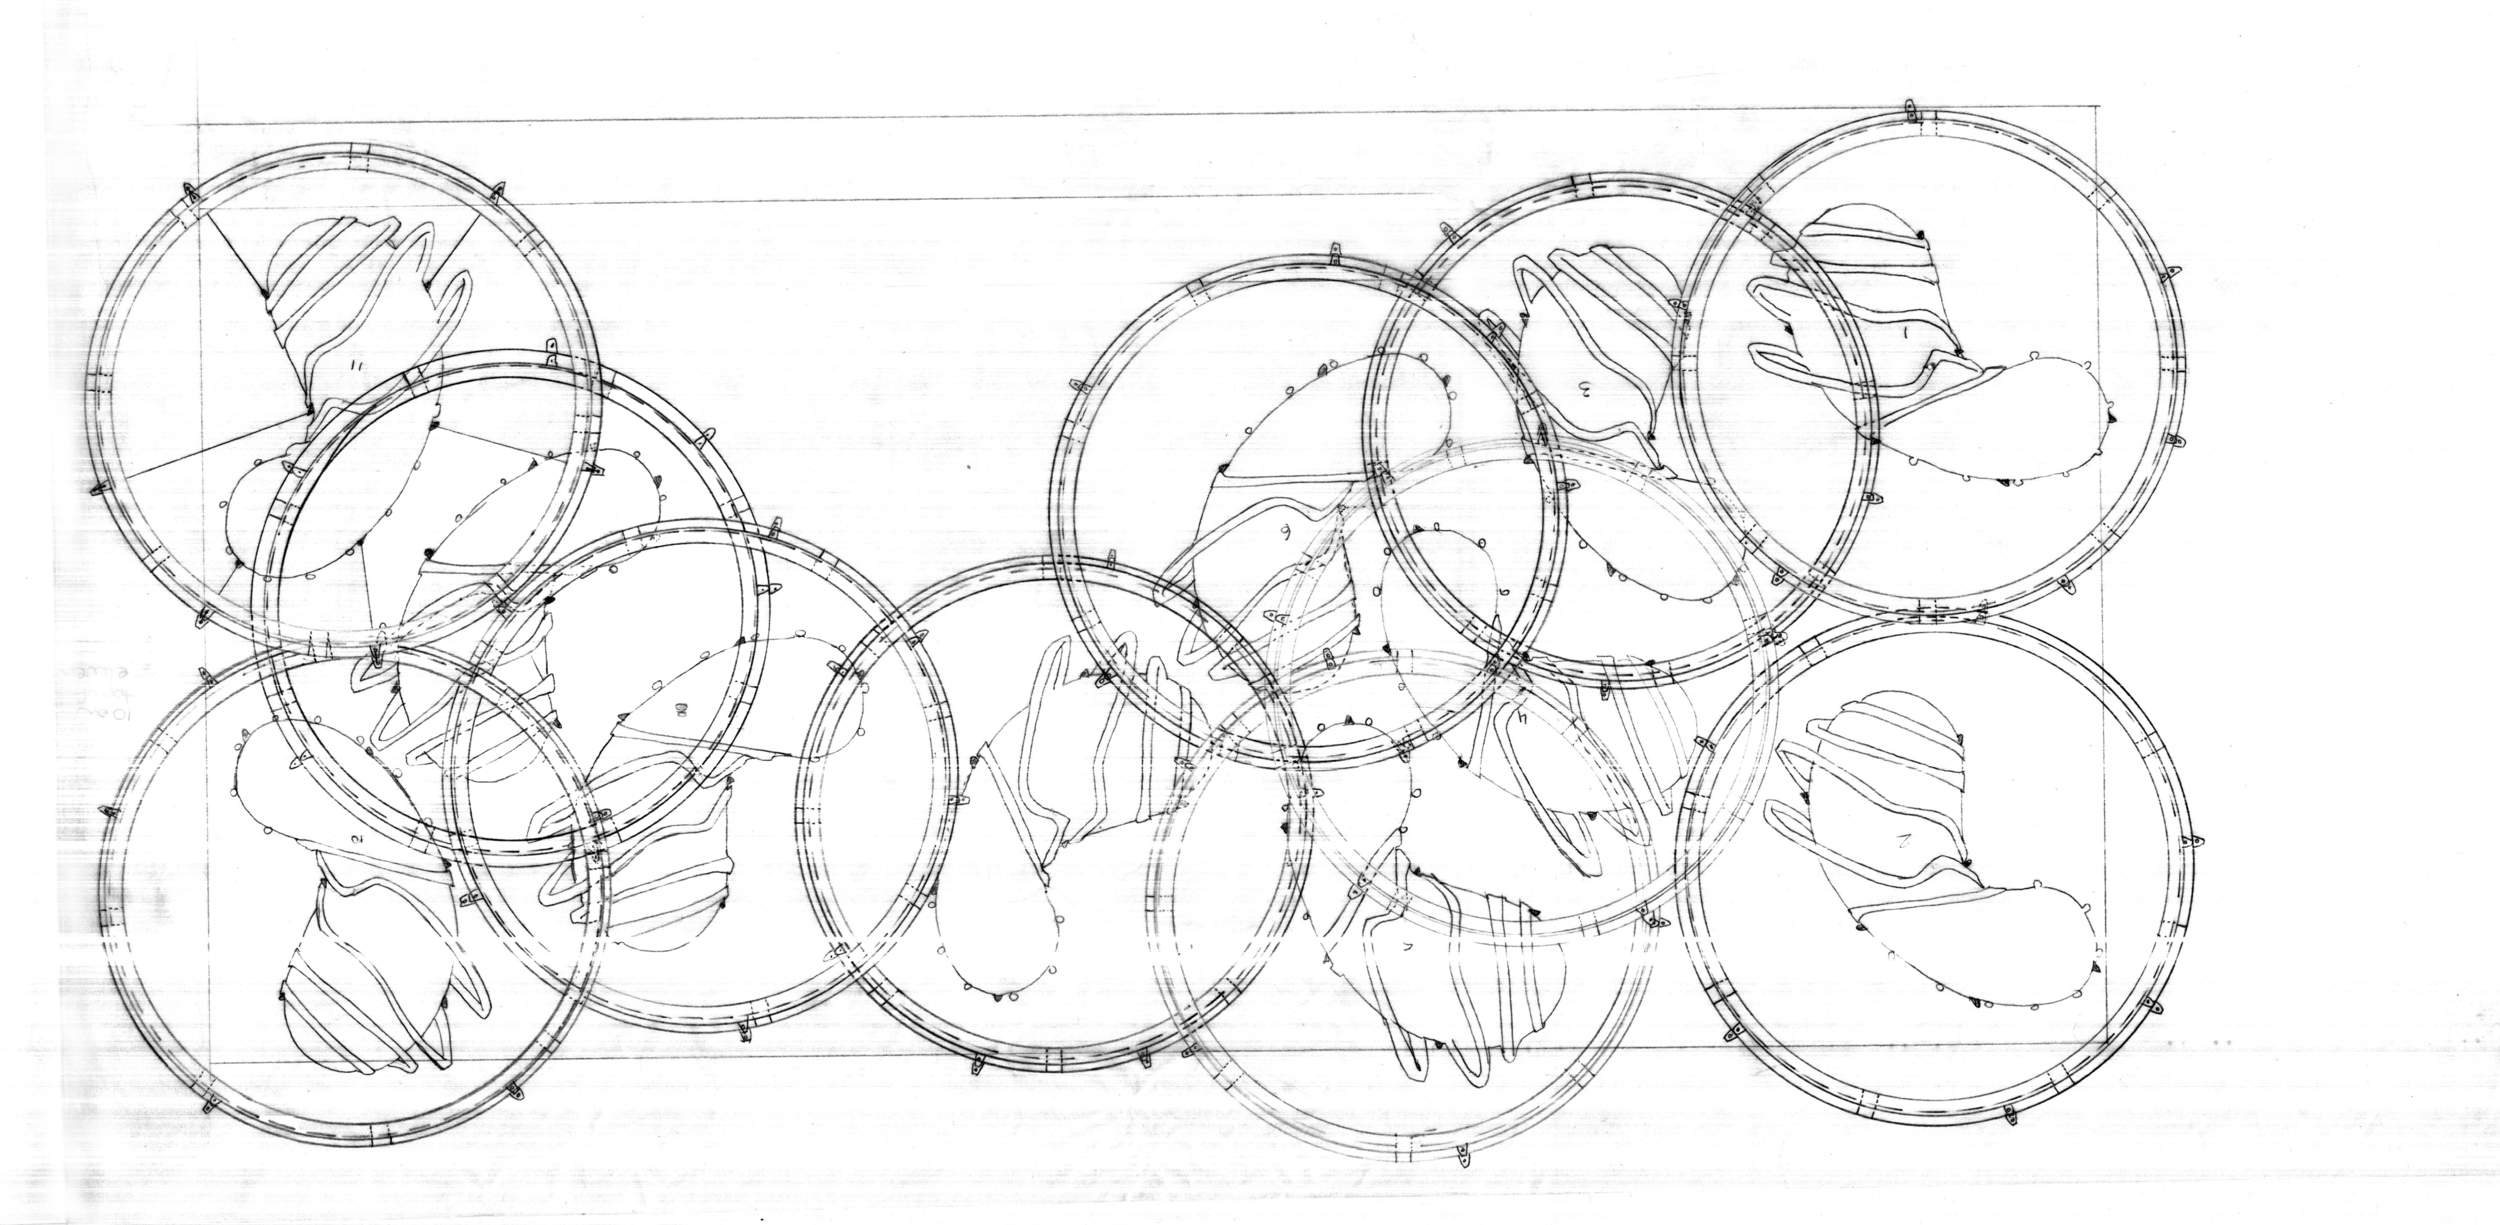 Boarding House, ring beam plan, graphite on tracing paper, 2008